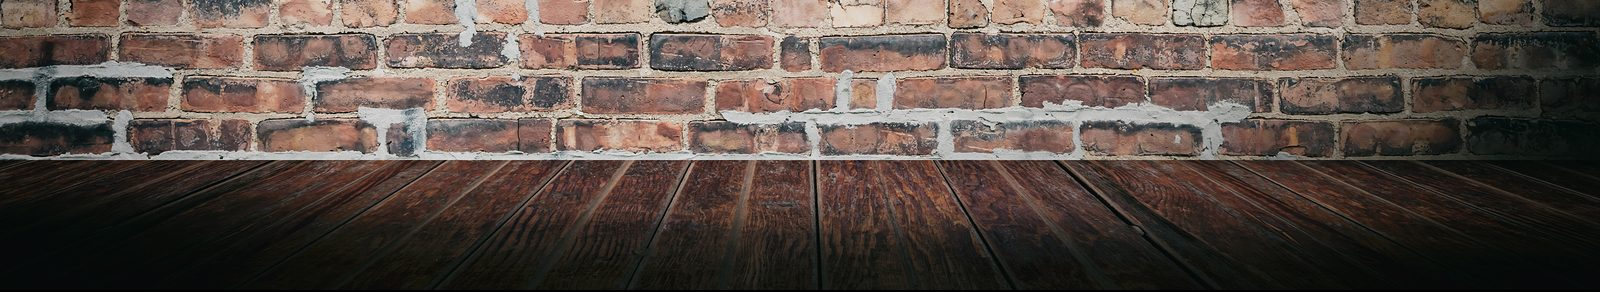 Brick wall and wood floor, modern and clean space for therapy for addictions, eating disorders, trauma & more with our skilled counselors in Indianapolis, Indiana